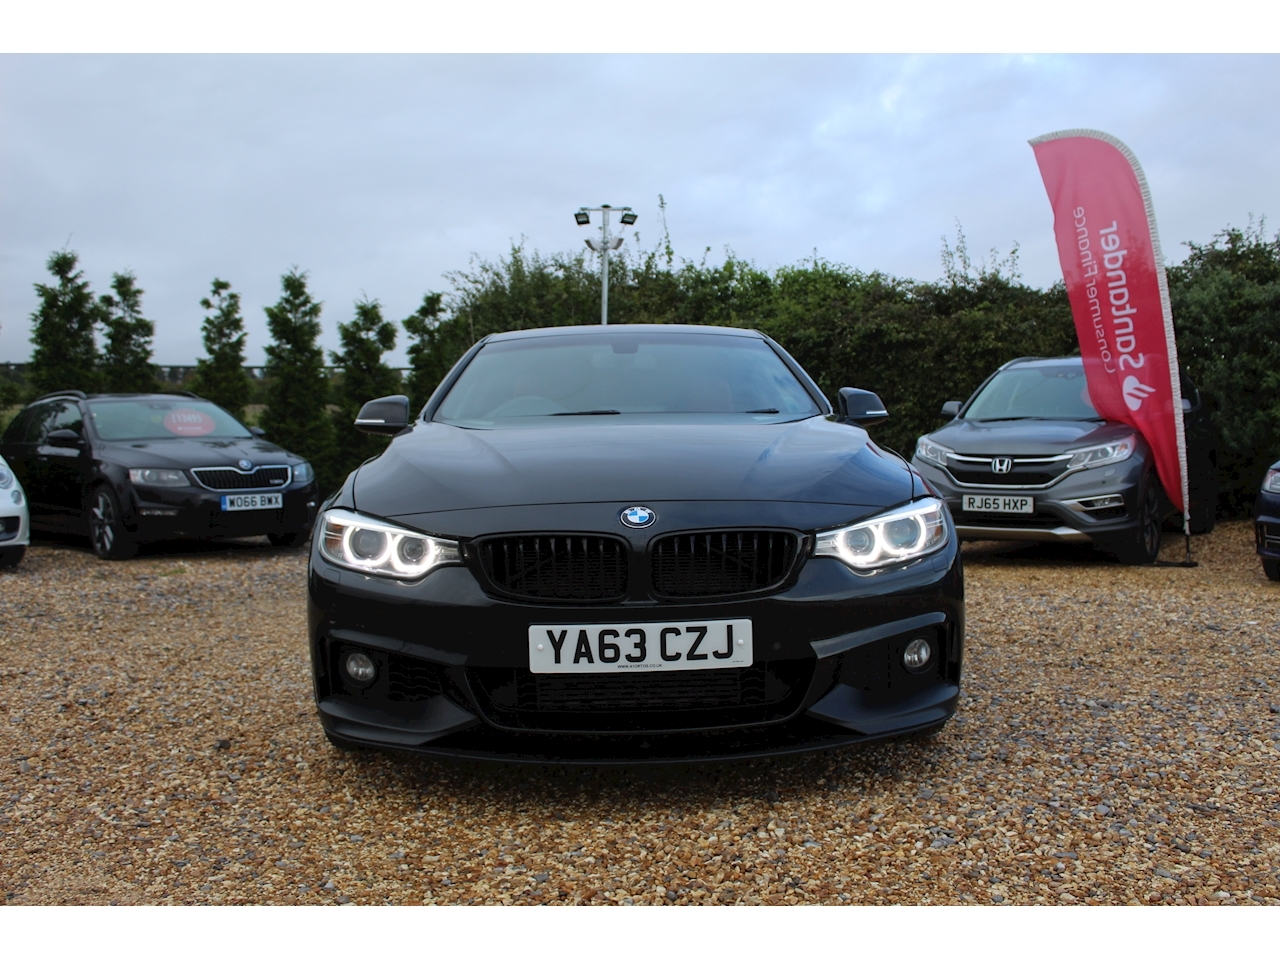 4 Series 435d xDrive M Sport Coupe Coupe 3.0 Automatic Diesel